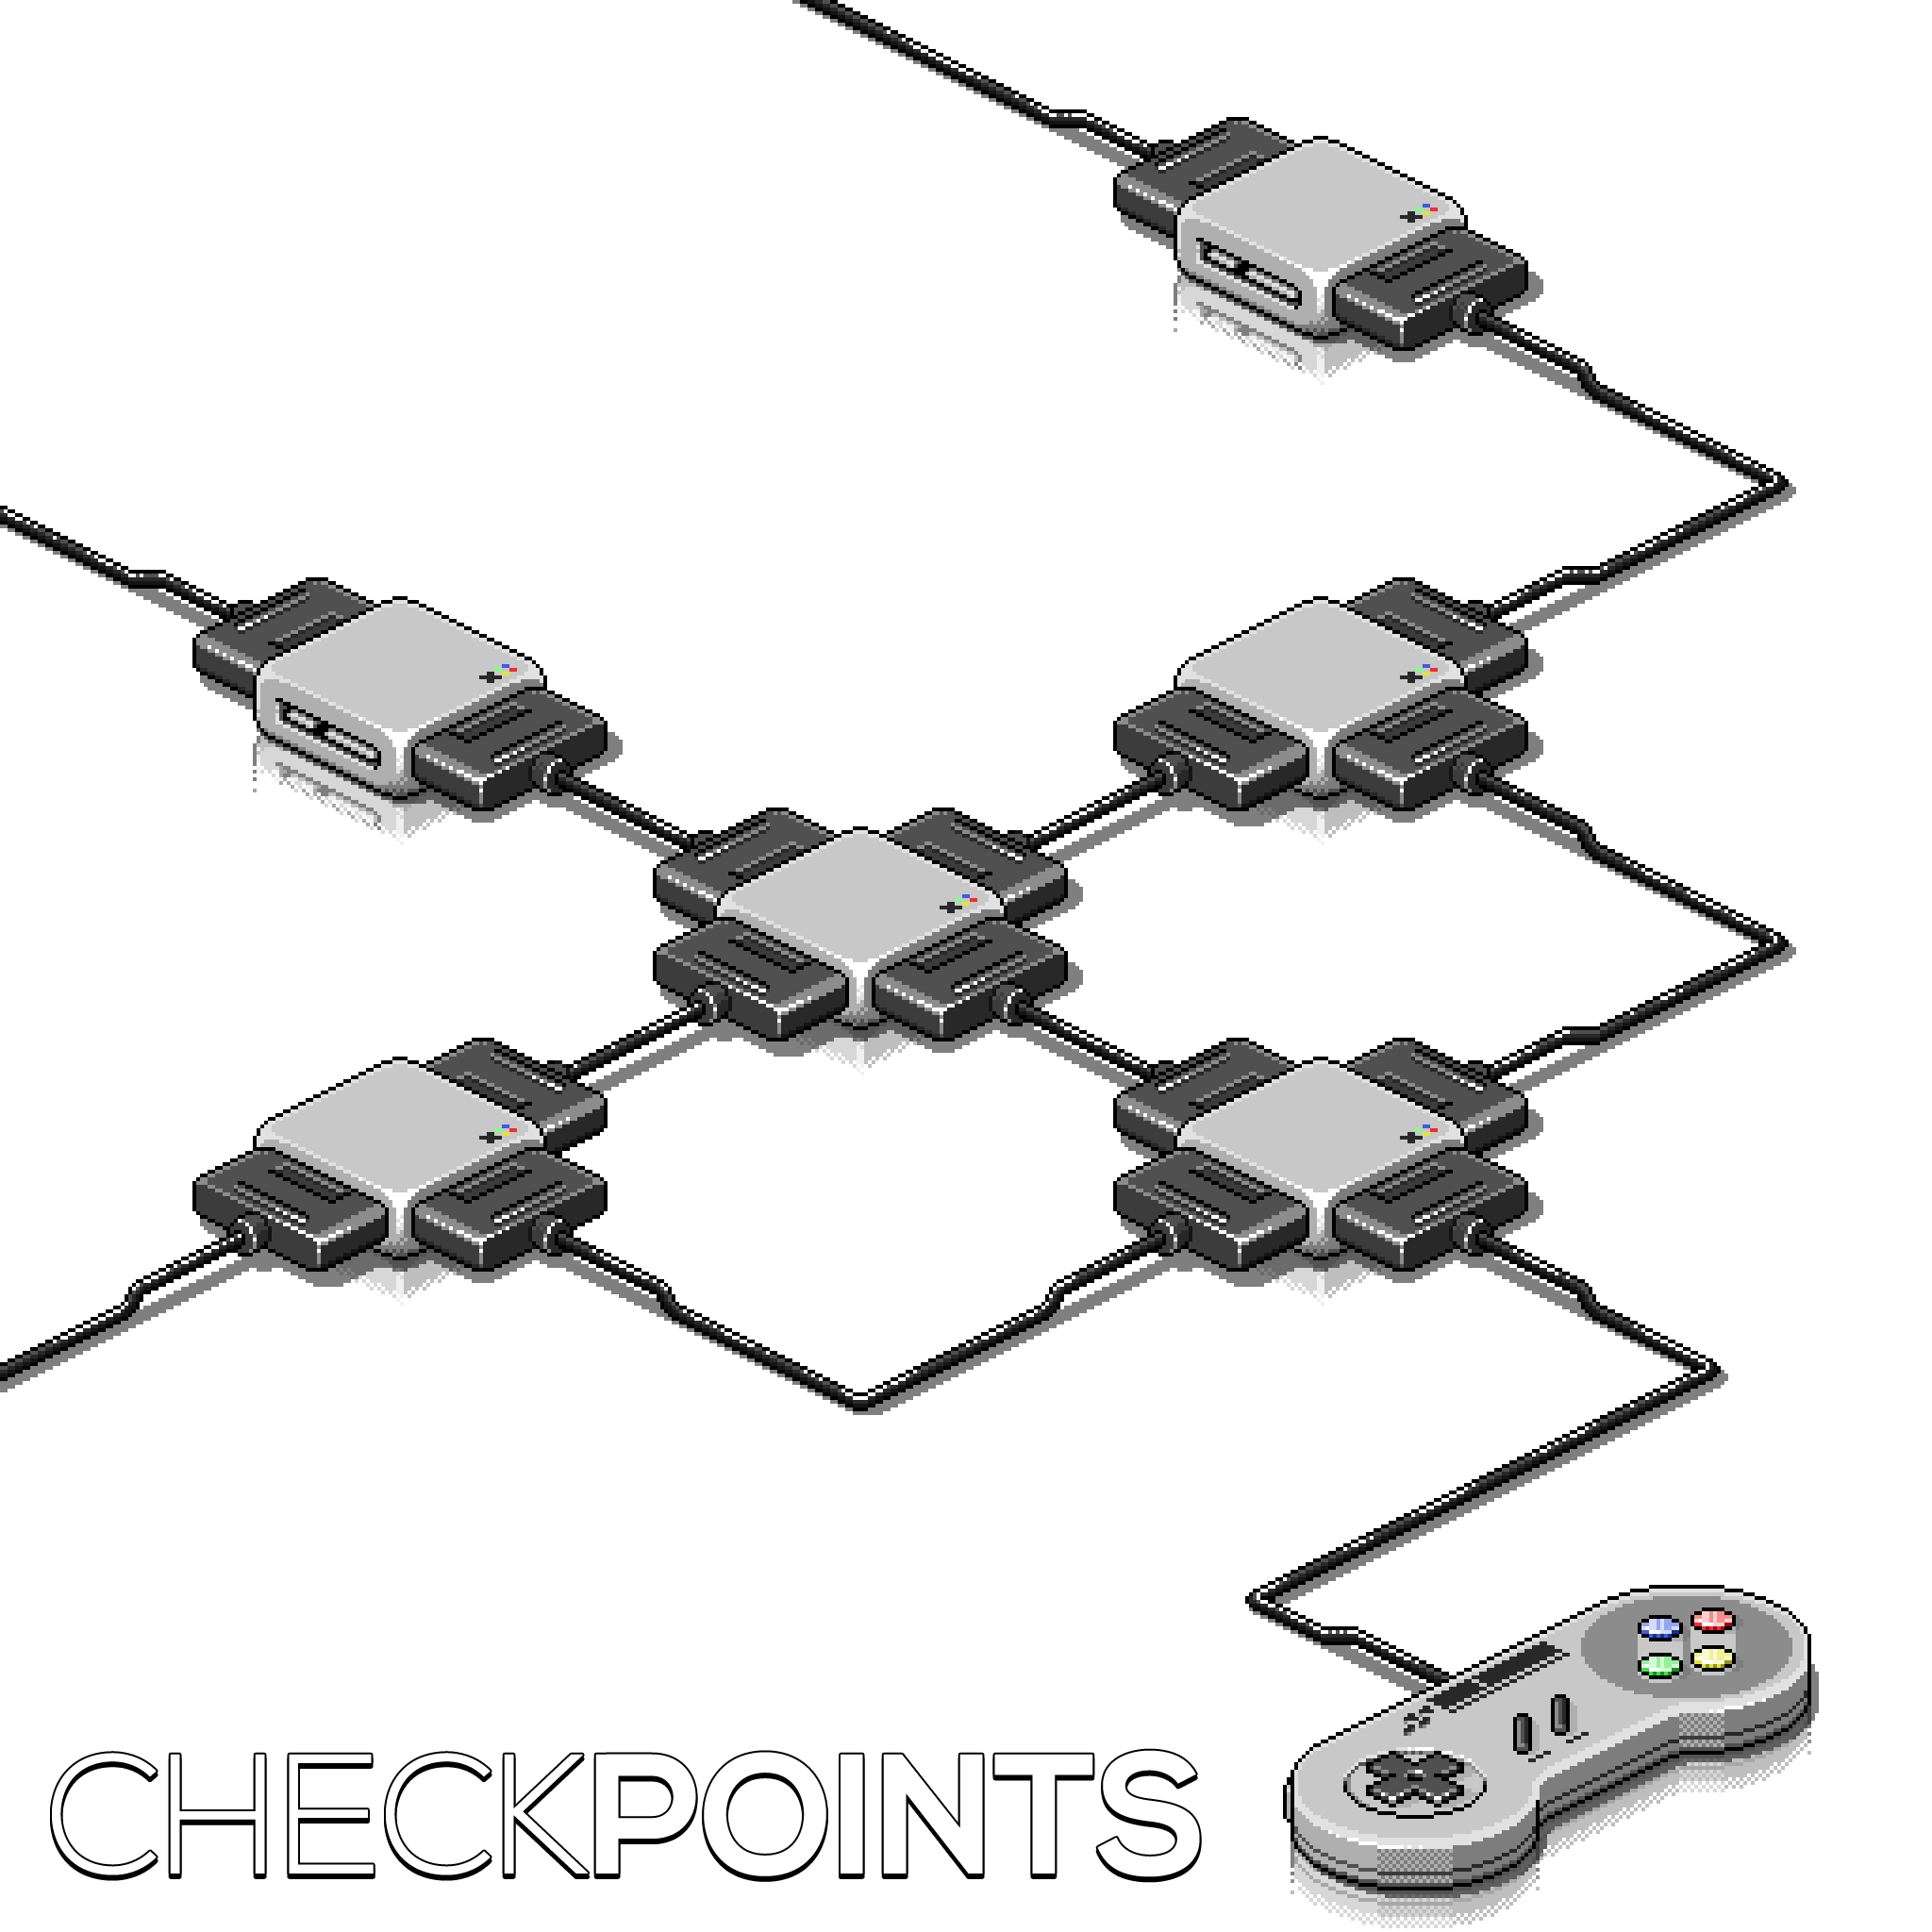 checkpoints final SNES v2f 2048.png